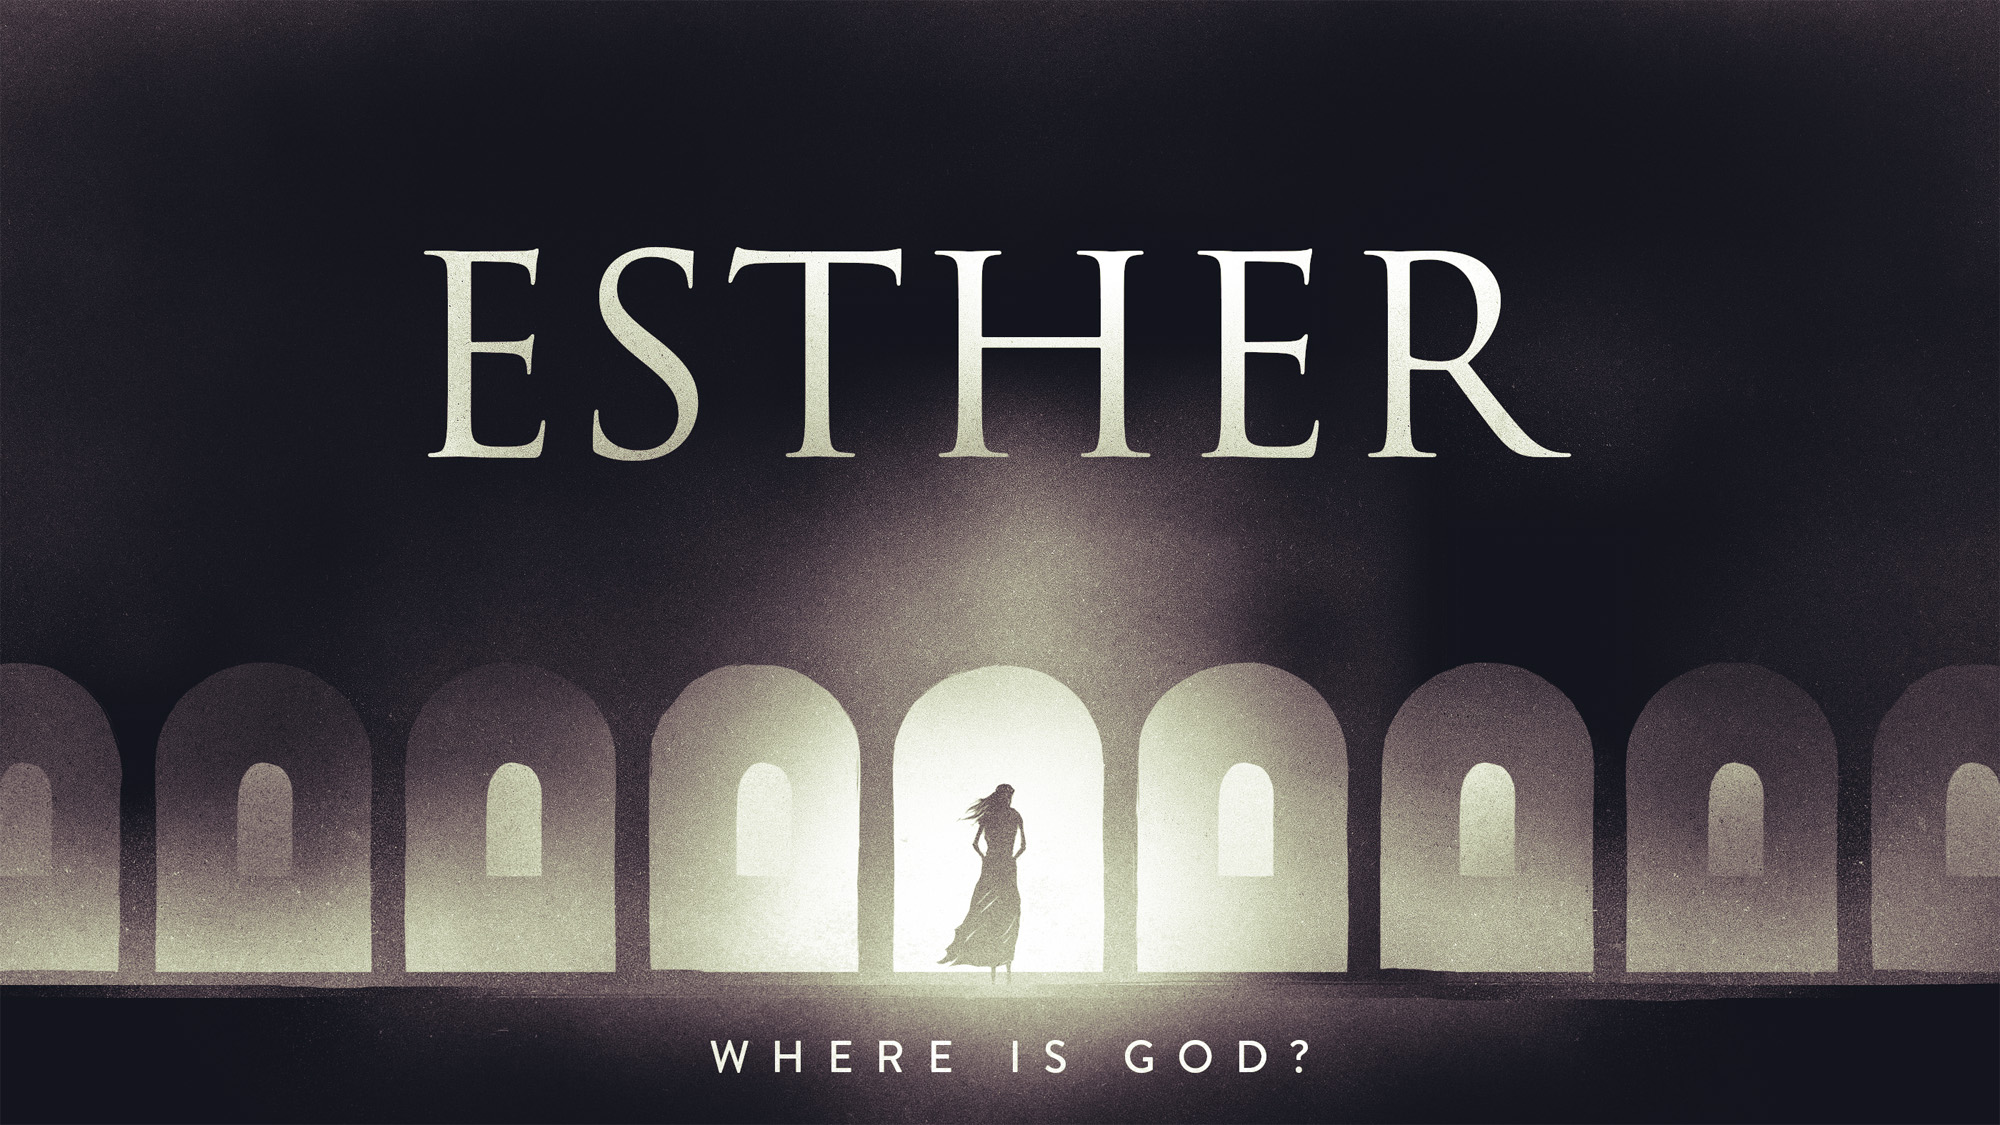 Esther - Where is God?